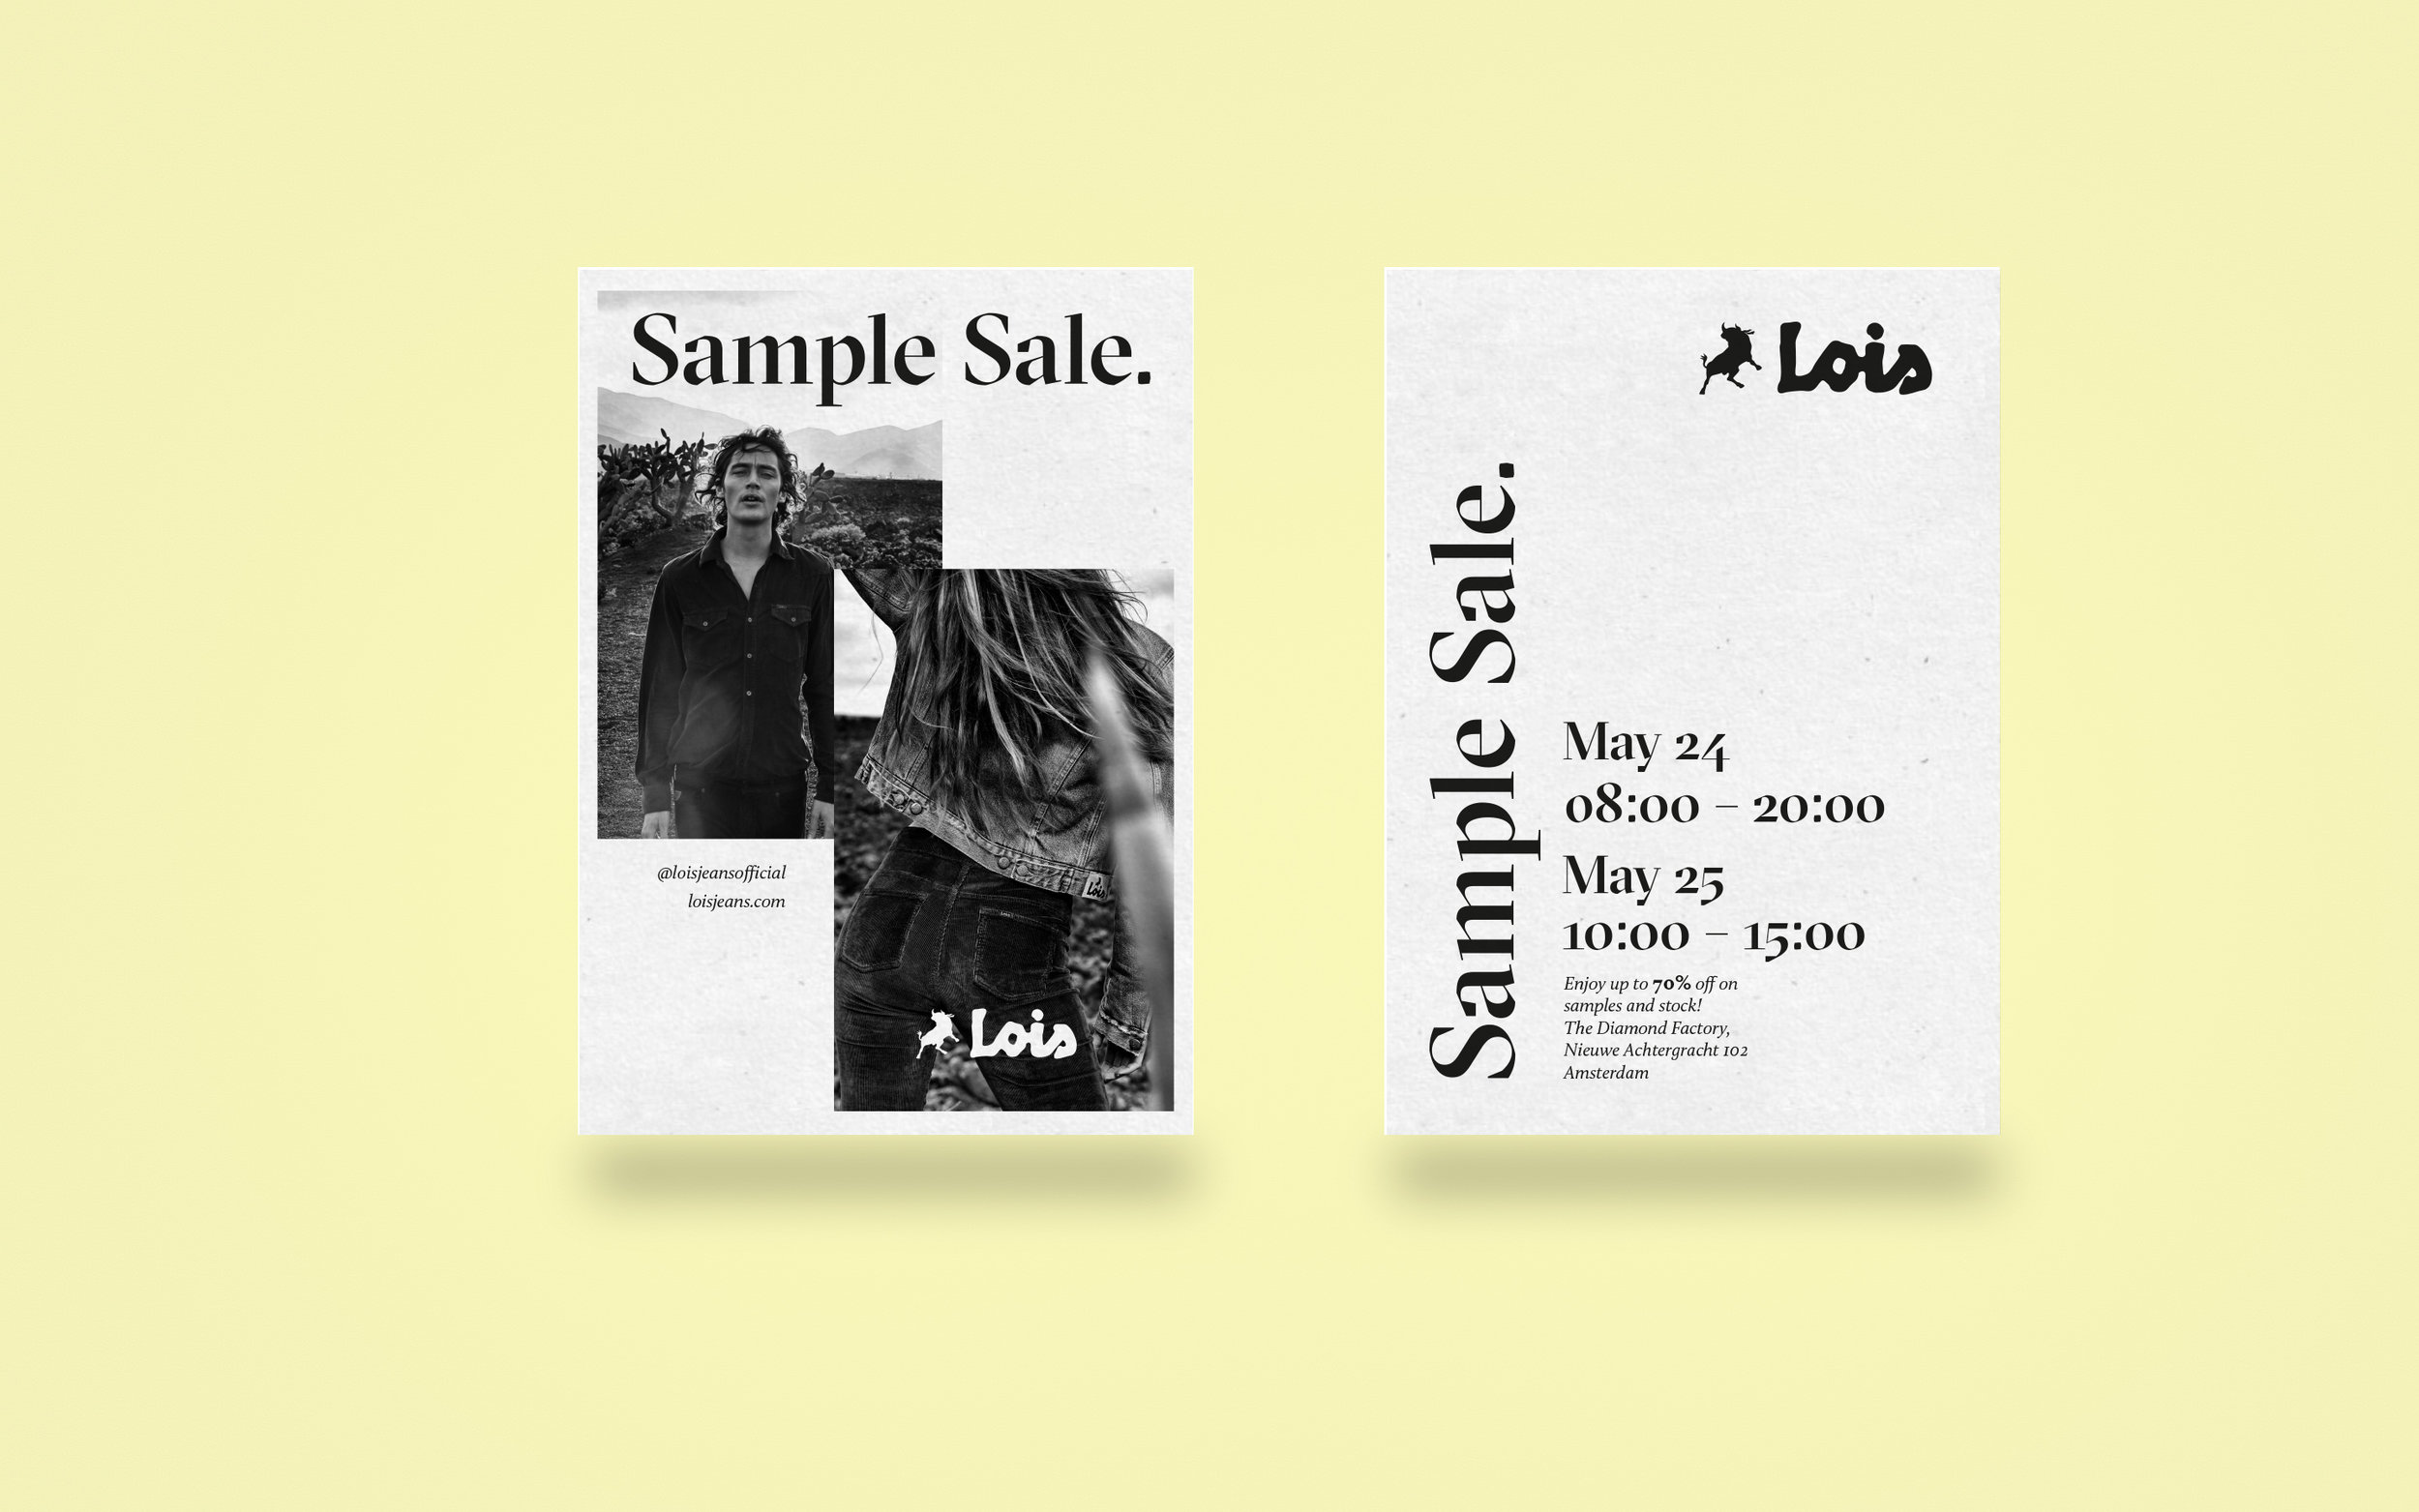 sample sale invite.